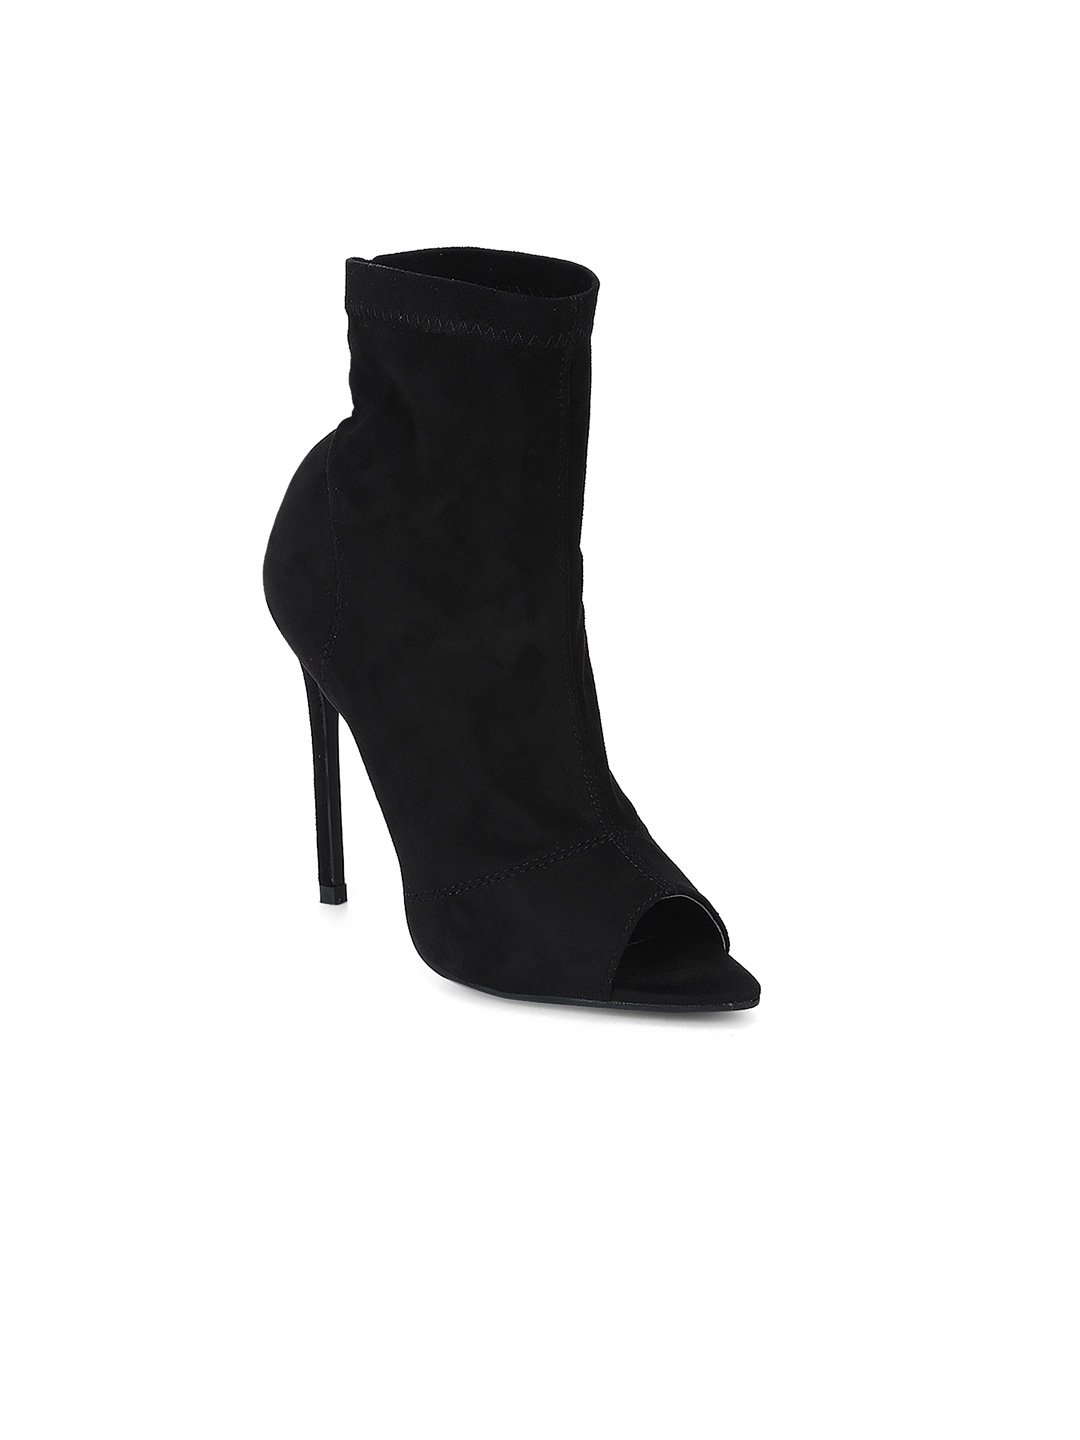 2f0ff1b35e3 Buy Truffle Collection Women Black Solid Heeled Boots - Heels for ...